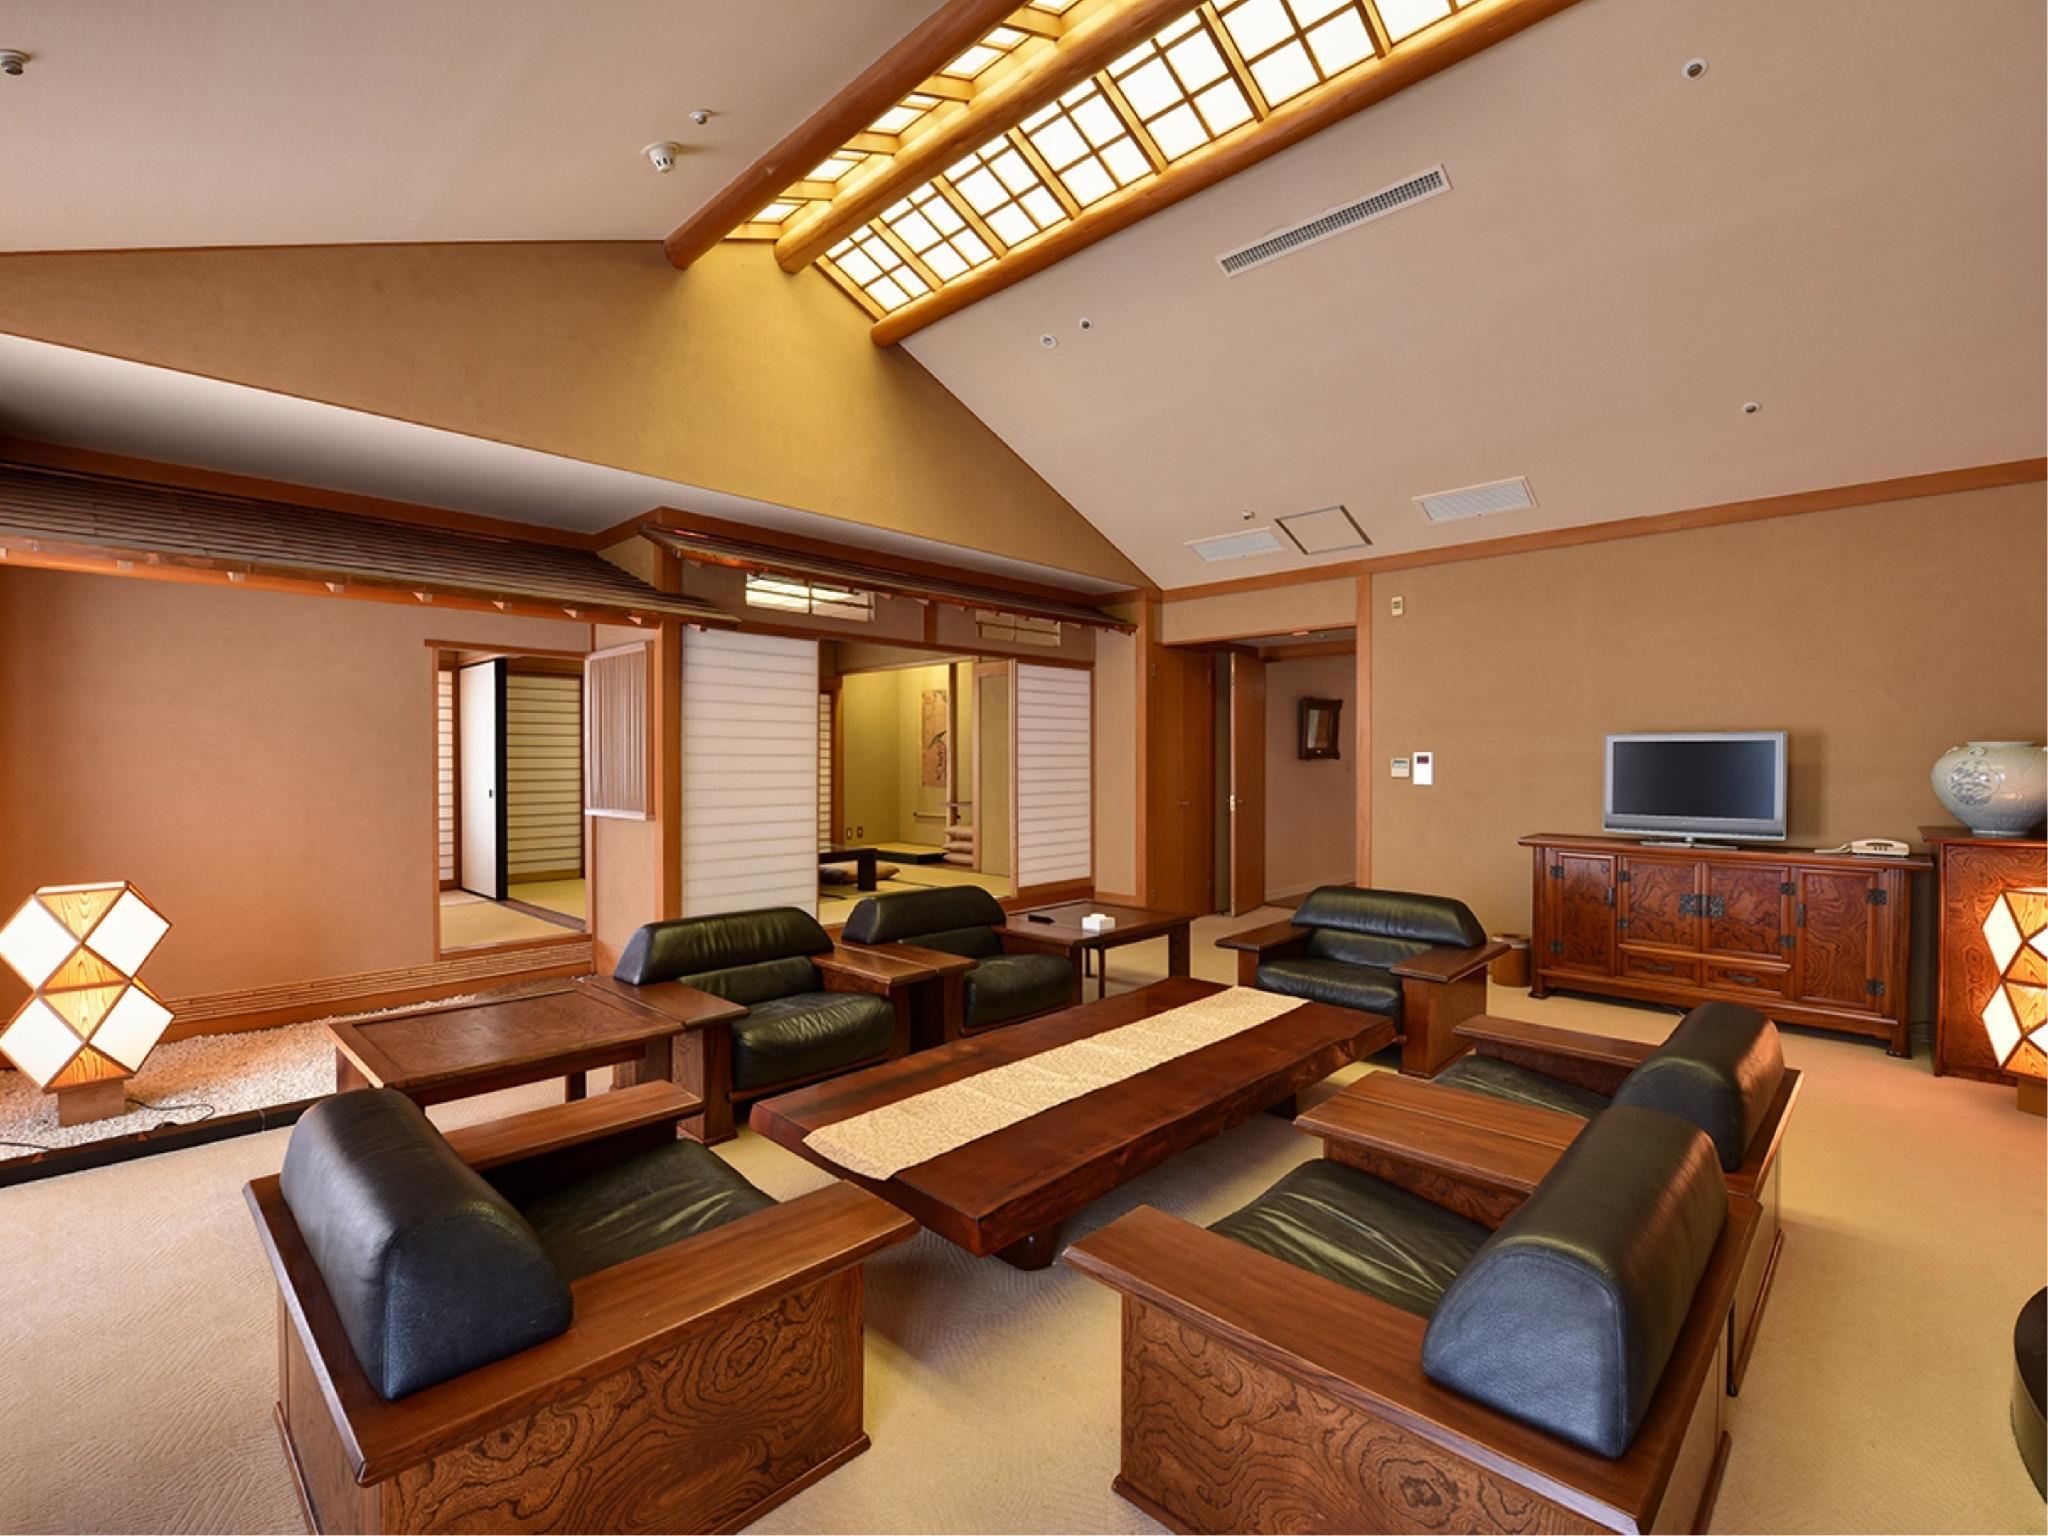 特别房(和洋类型皇家套房) (Special Japanese/Western-style Royal Suite)